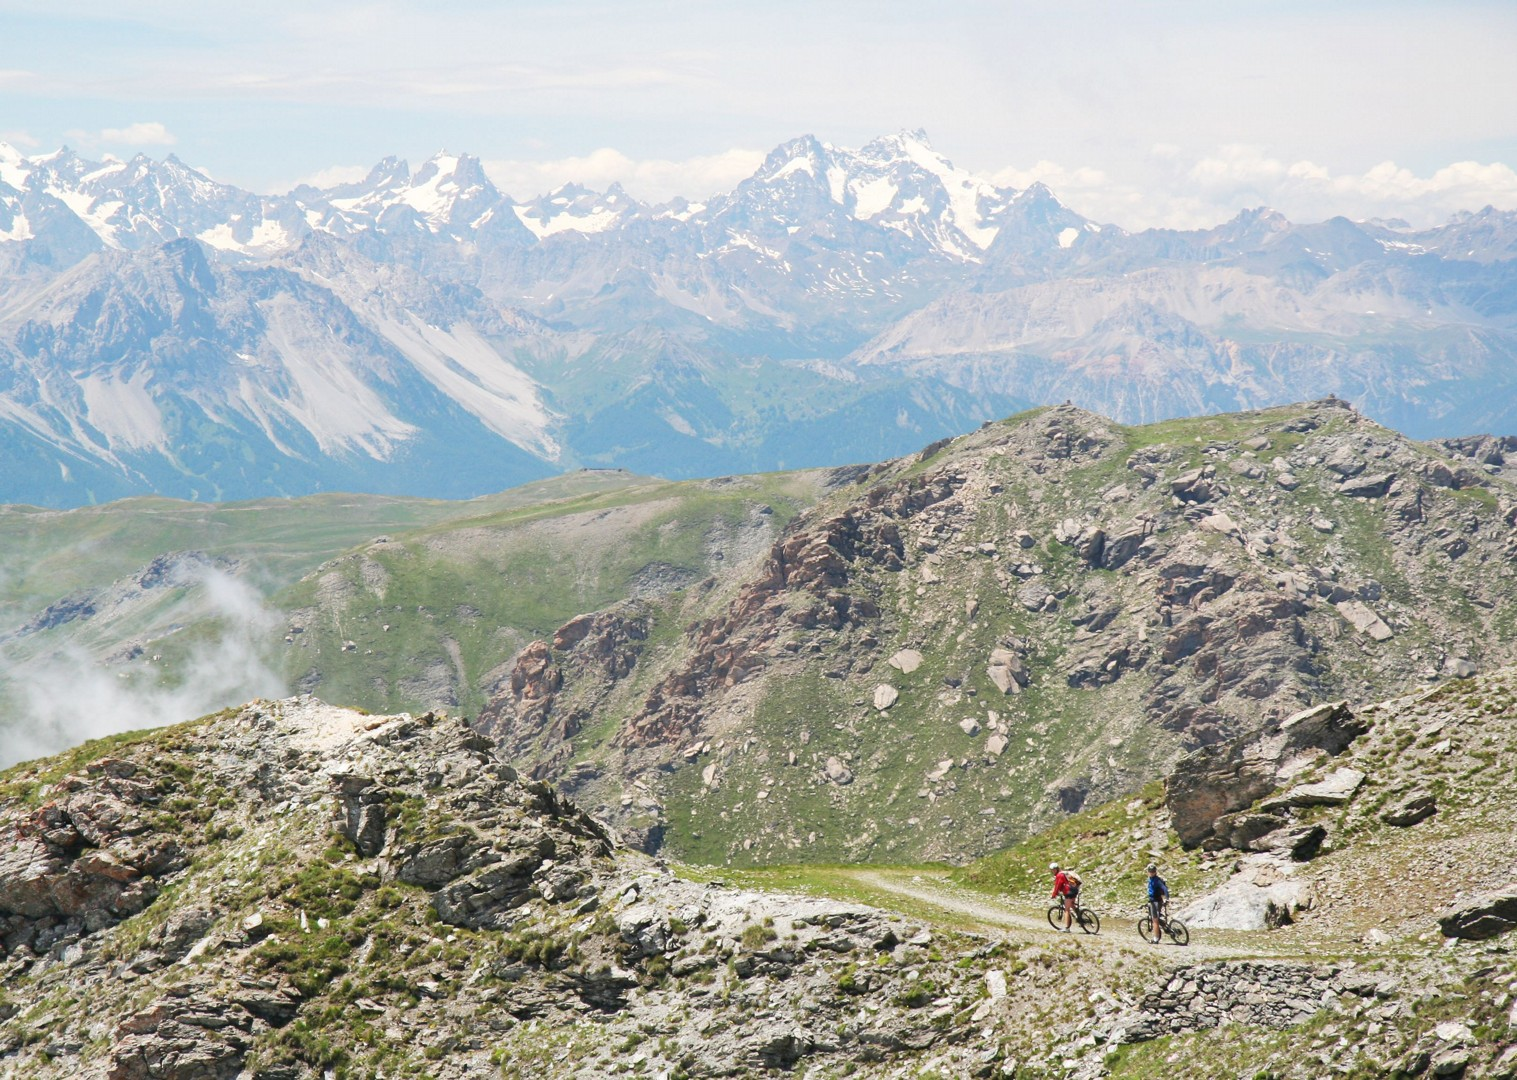 mountain-bike-holiday-in-the-alps-alpine-adventure.JPG - Italy and France - Alpine Adventure - Mountain Biking